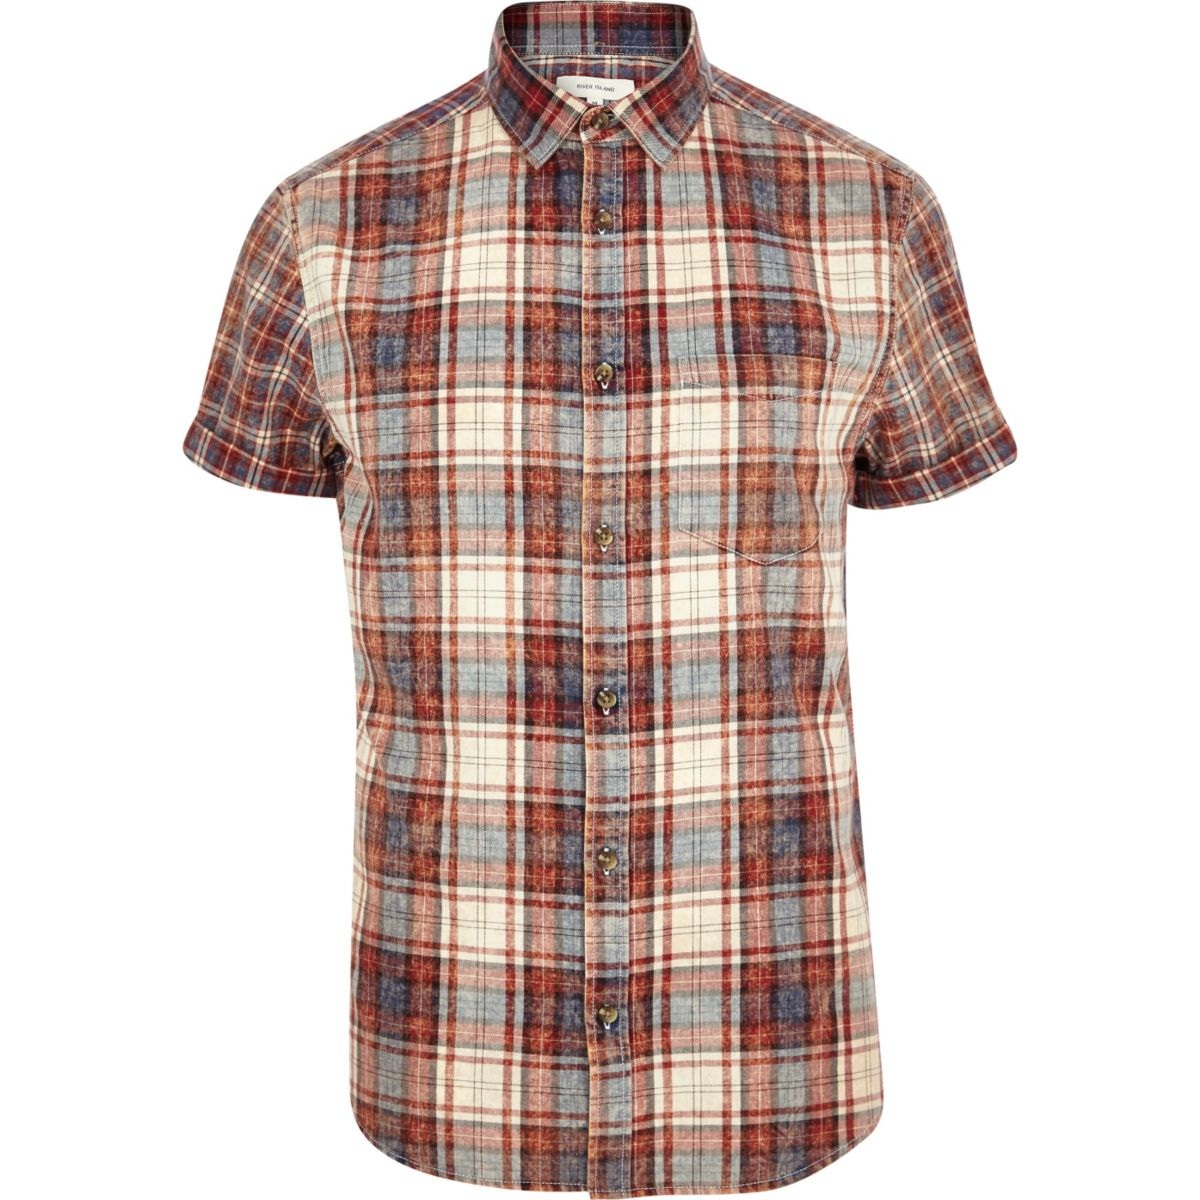 Discover incredible savings on Cabela's sale items in the Cabela's Bargain Cave, your place for discounted prices on men's short sleeve shirts.